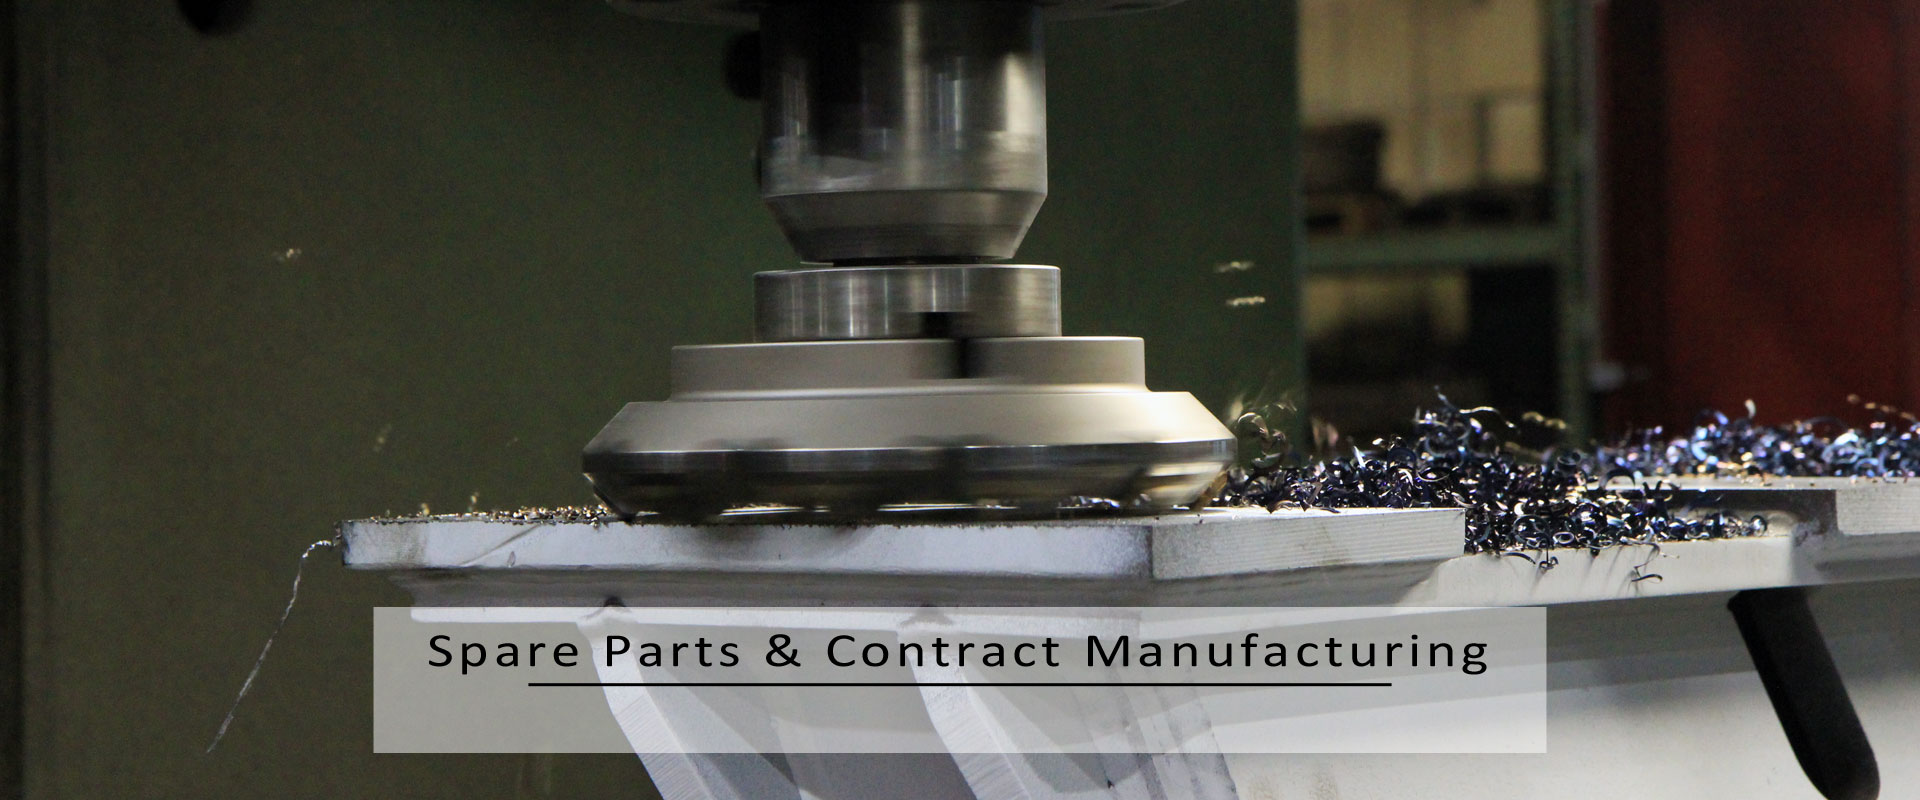 spare parts & contract manufacturing